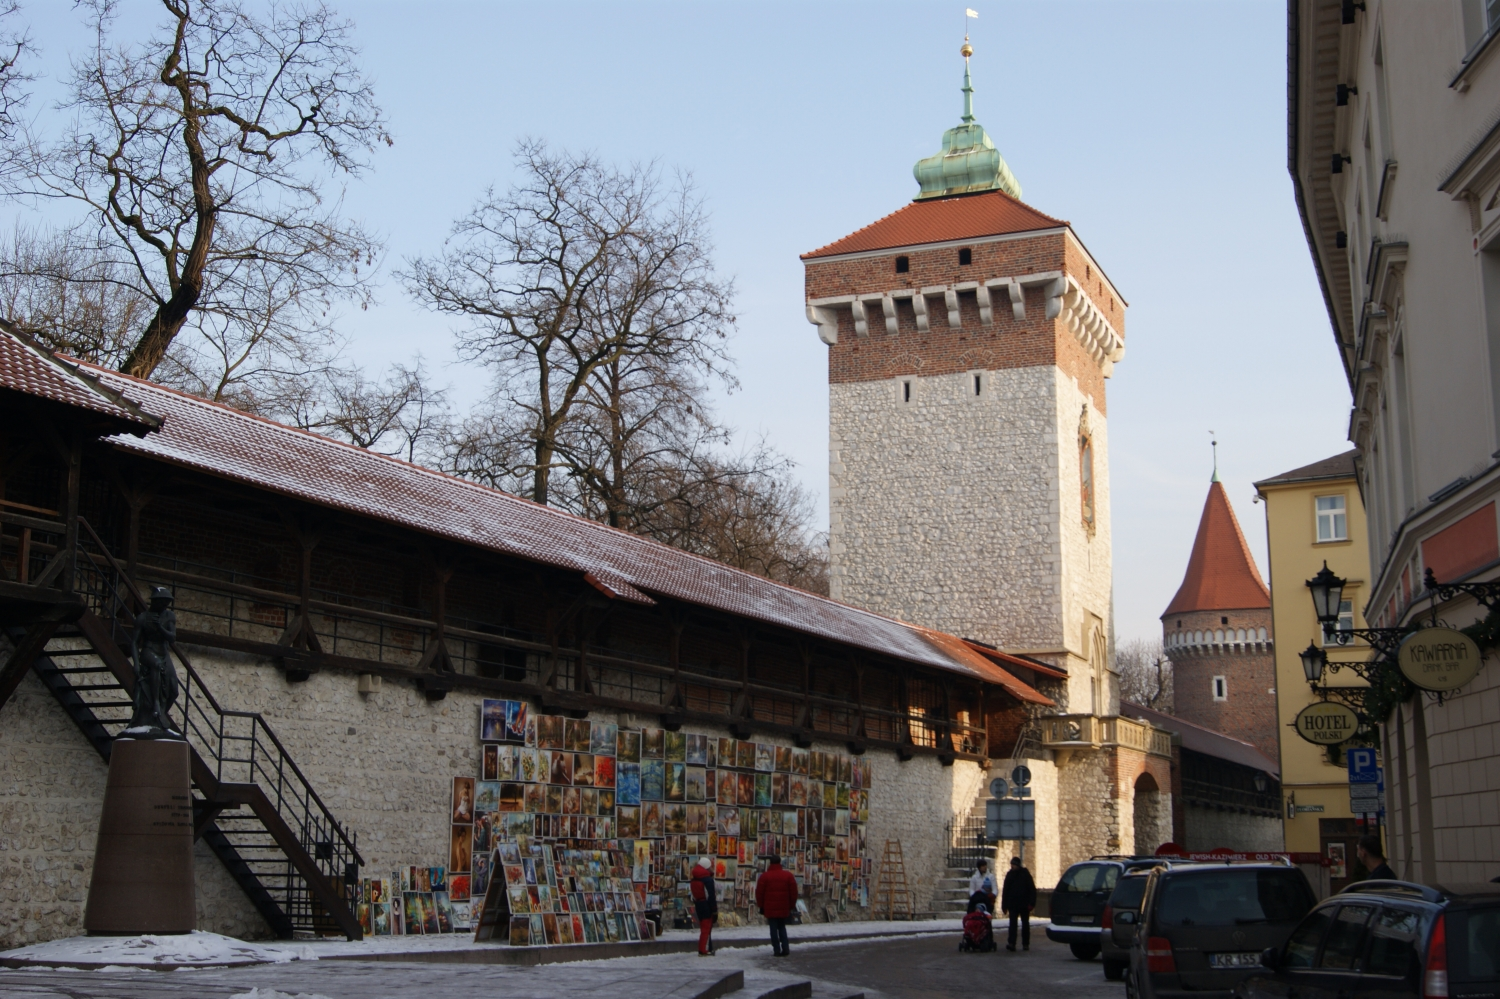 Krakow City Walls